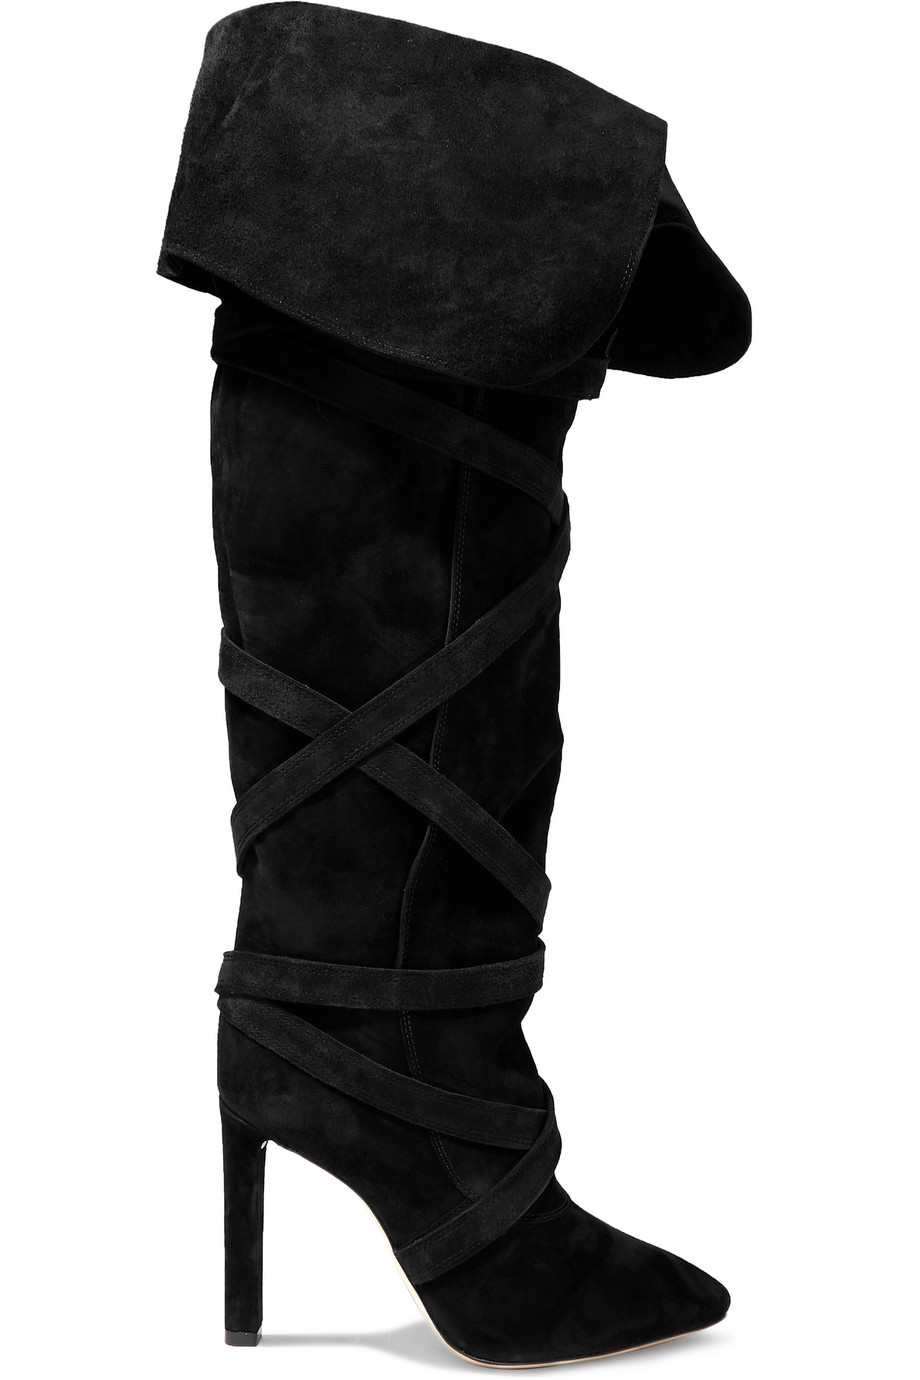 Suede Boots Saint Laurent buy Suede Boots Saint Laurent internet shop